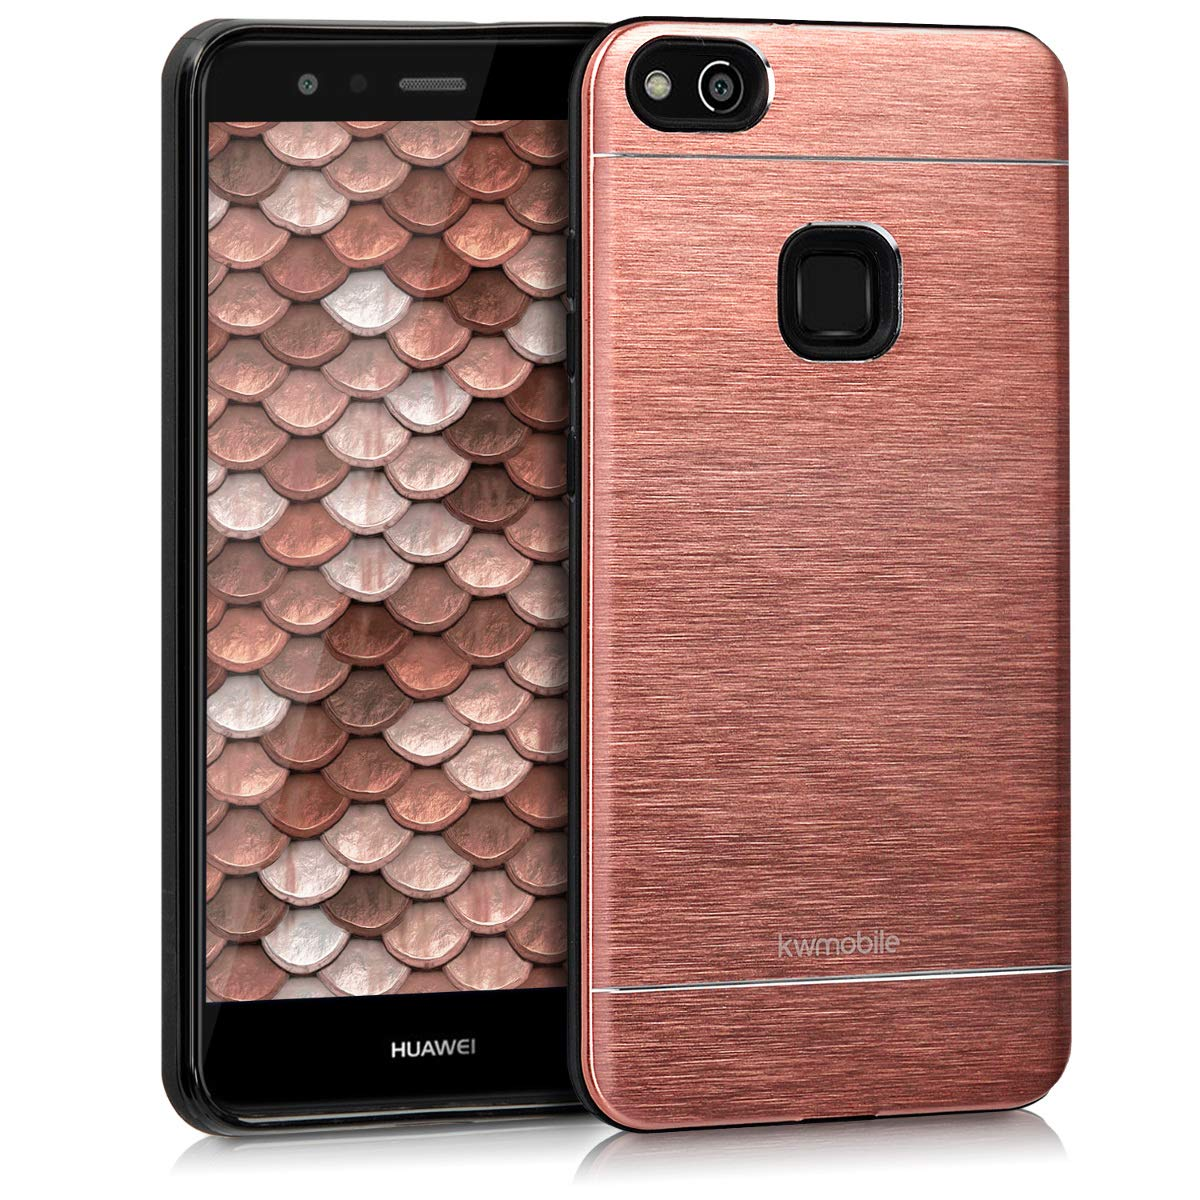 kwmobile Case for Huawei P10 Lite - Durable Shockproof Aluminum ...